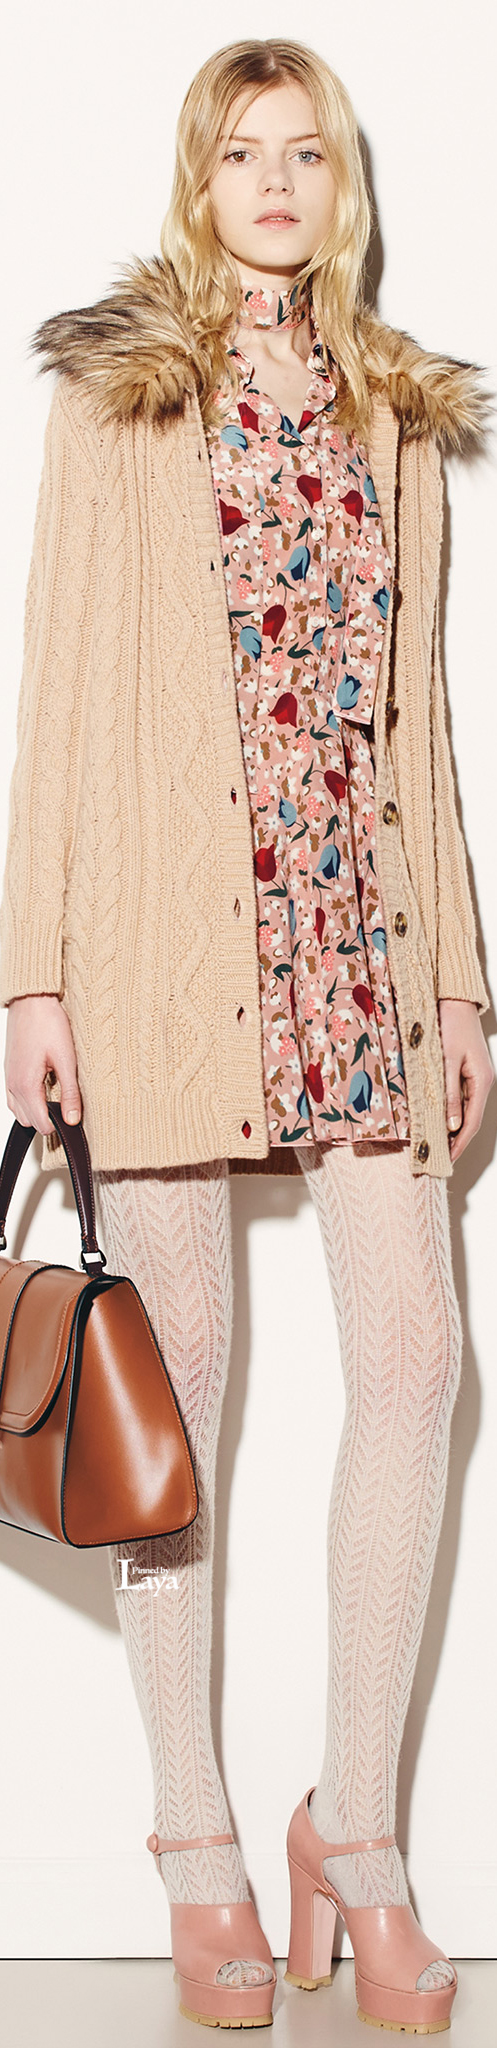 Red Valentino Fall 2015 Ready-to-Wear